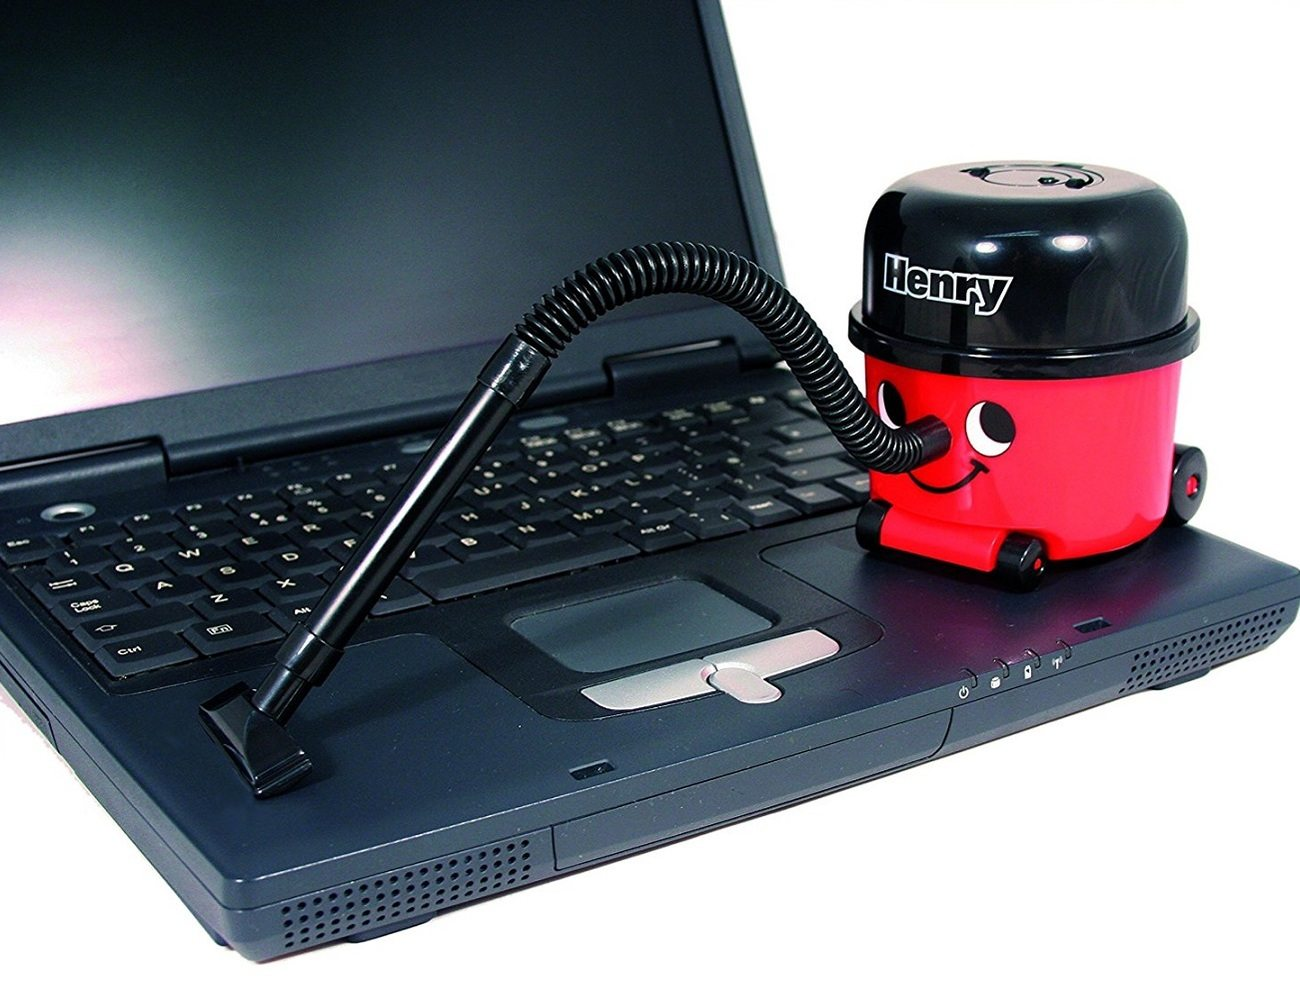 Henry Desktop Vacuum Cleaner